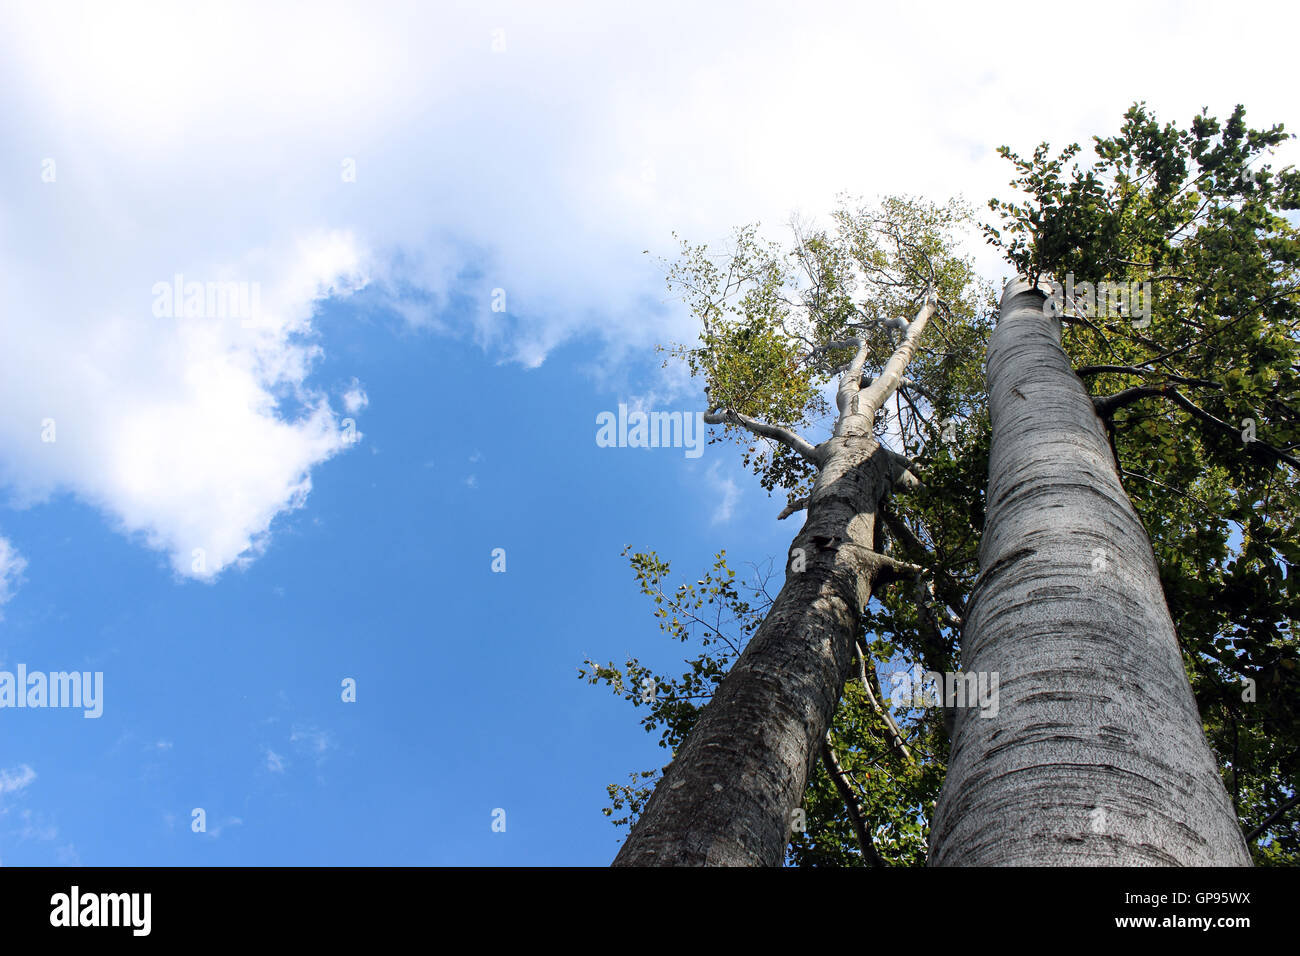 Trees reaching for the sky with clouds, viewed from below - Stock Image